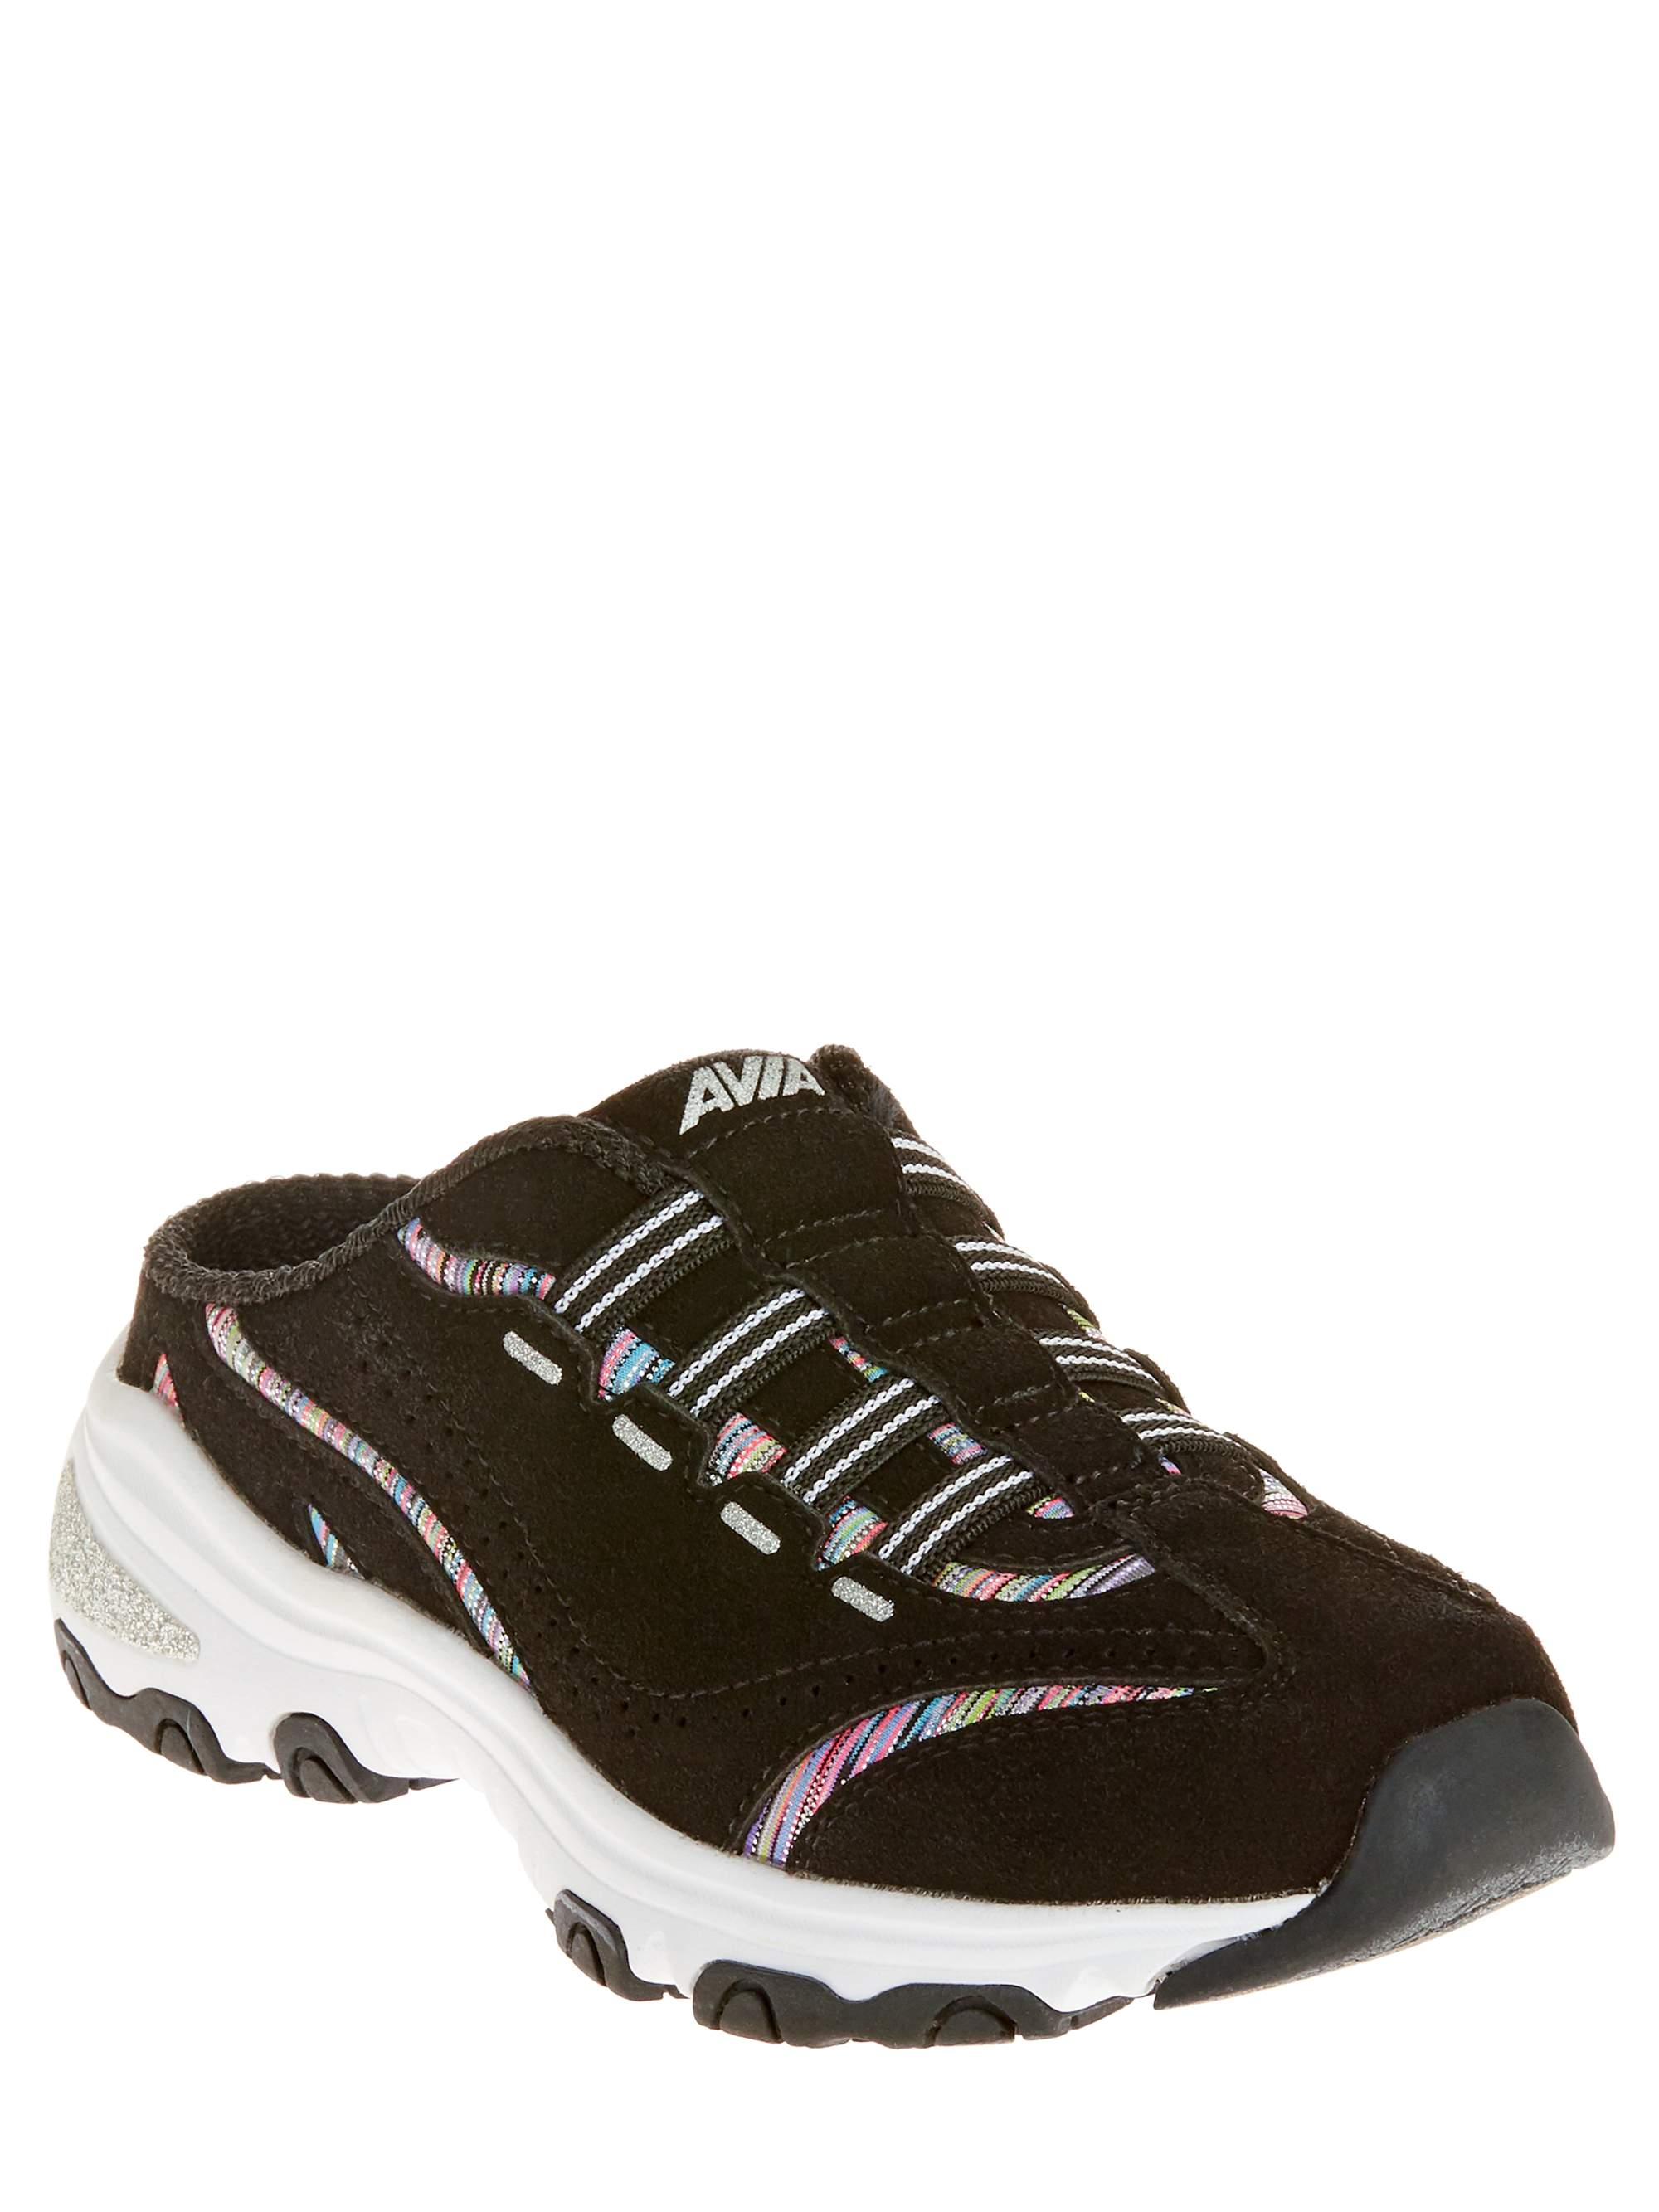 Women's Avia Elevate Memory Foam Mule